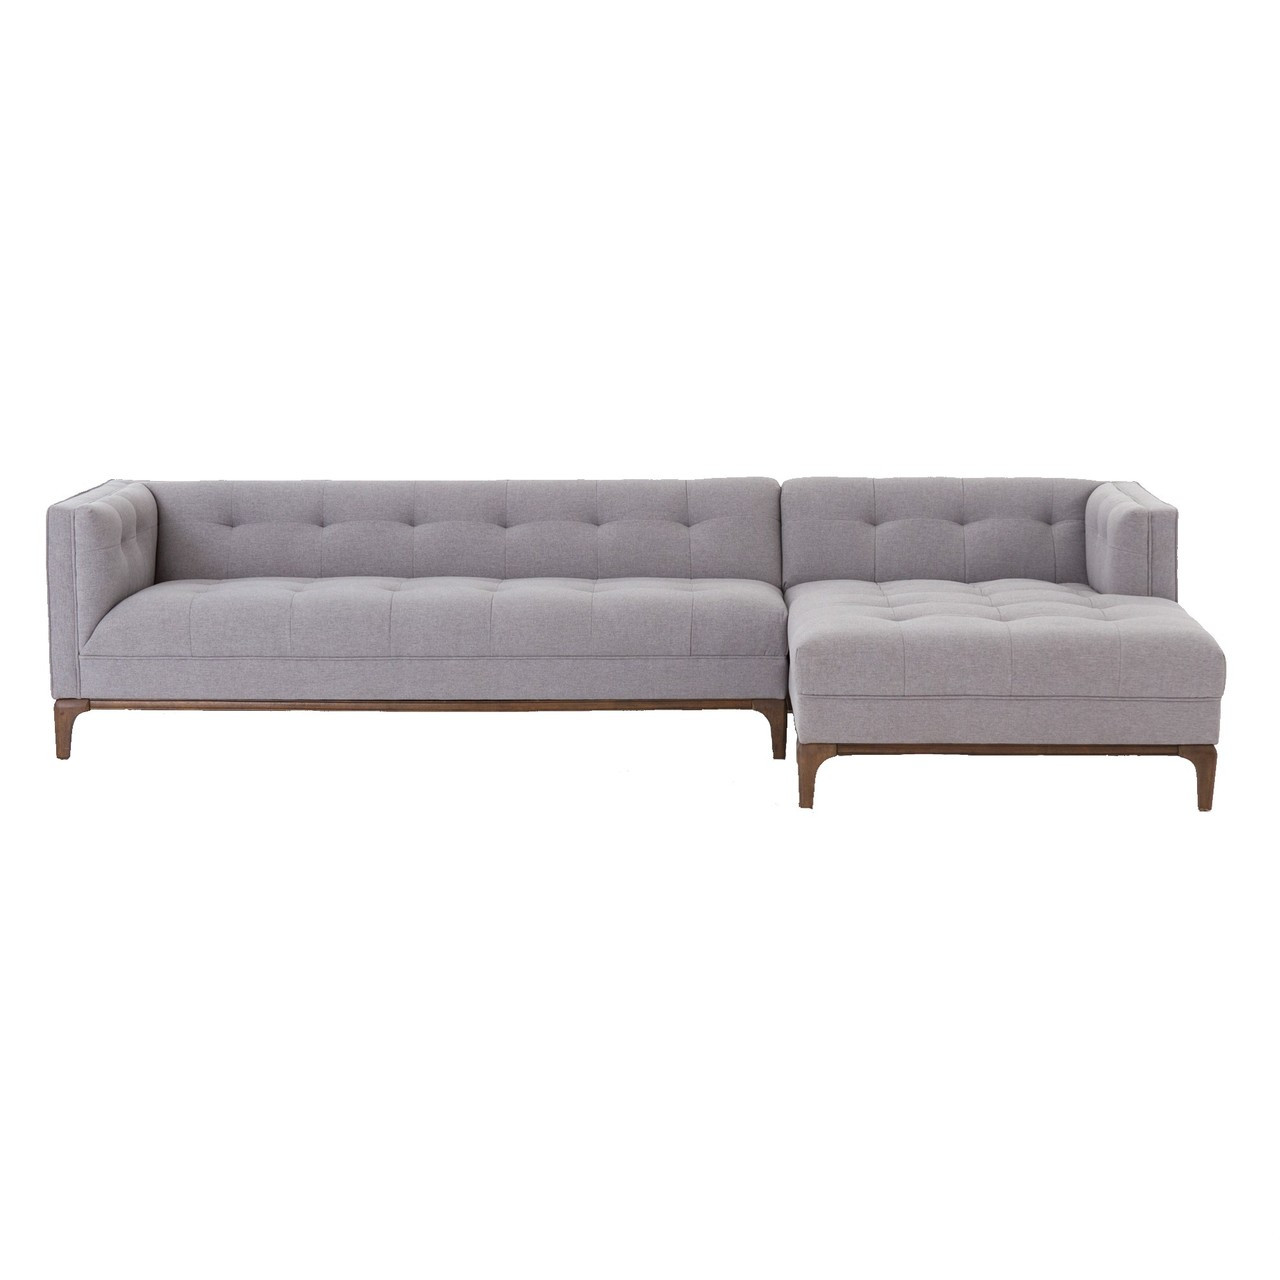 Sofa Modern Dylan Mid Century Modern Tufted 2 Piece Sectional Sofa